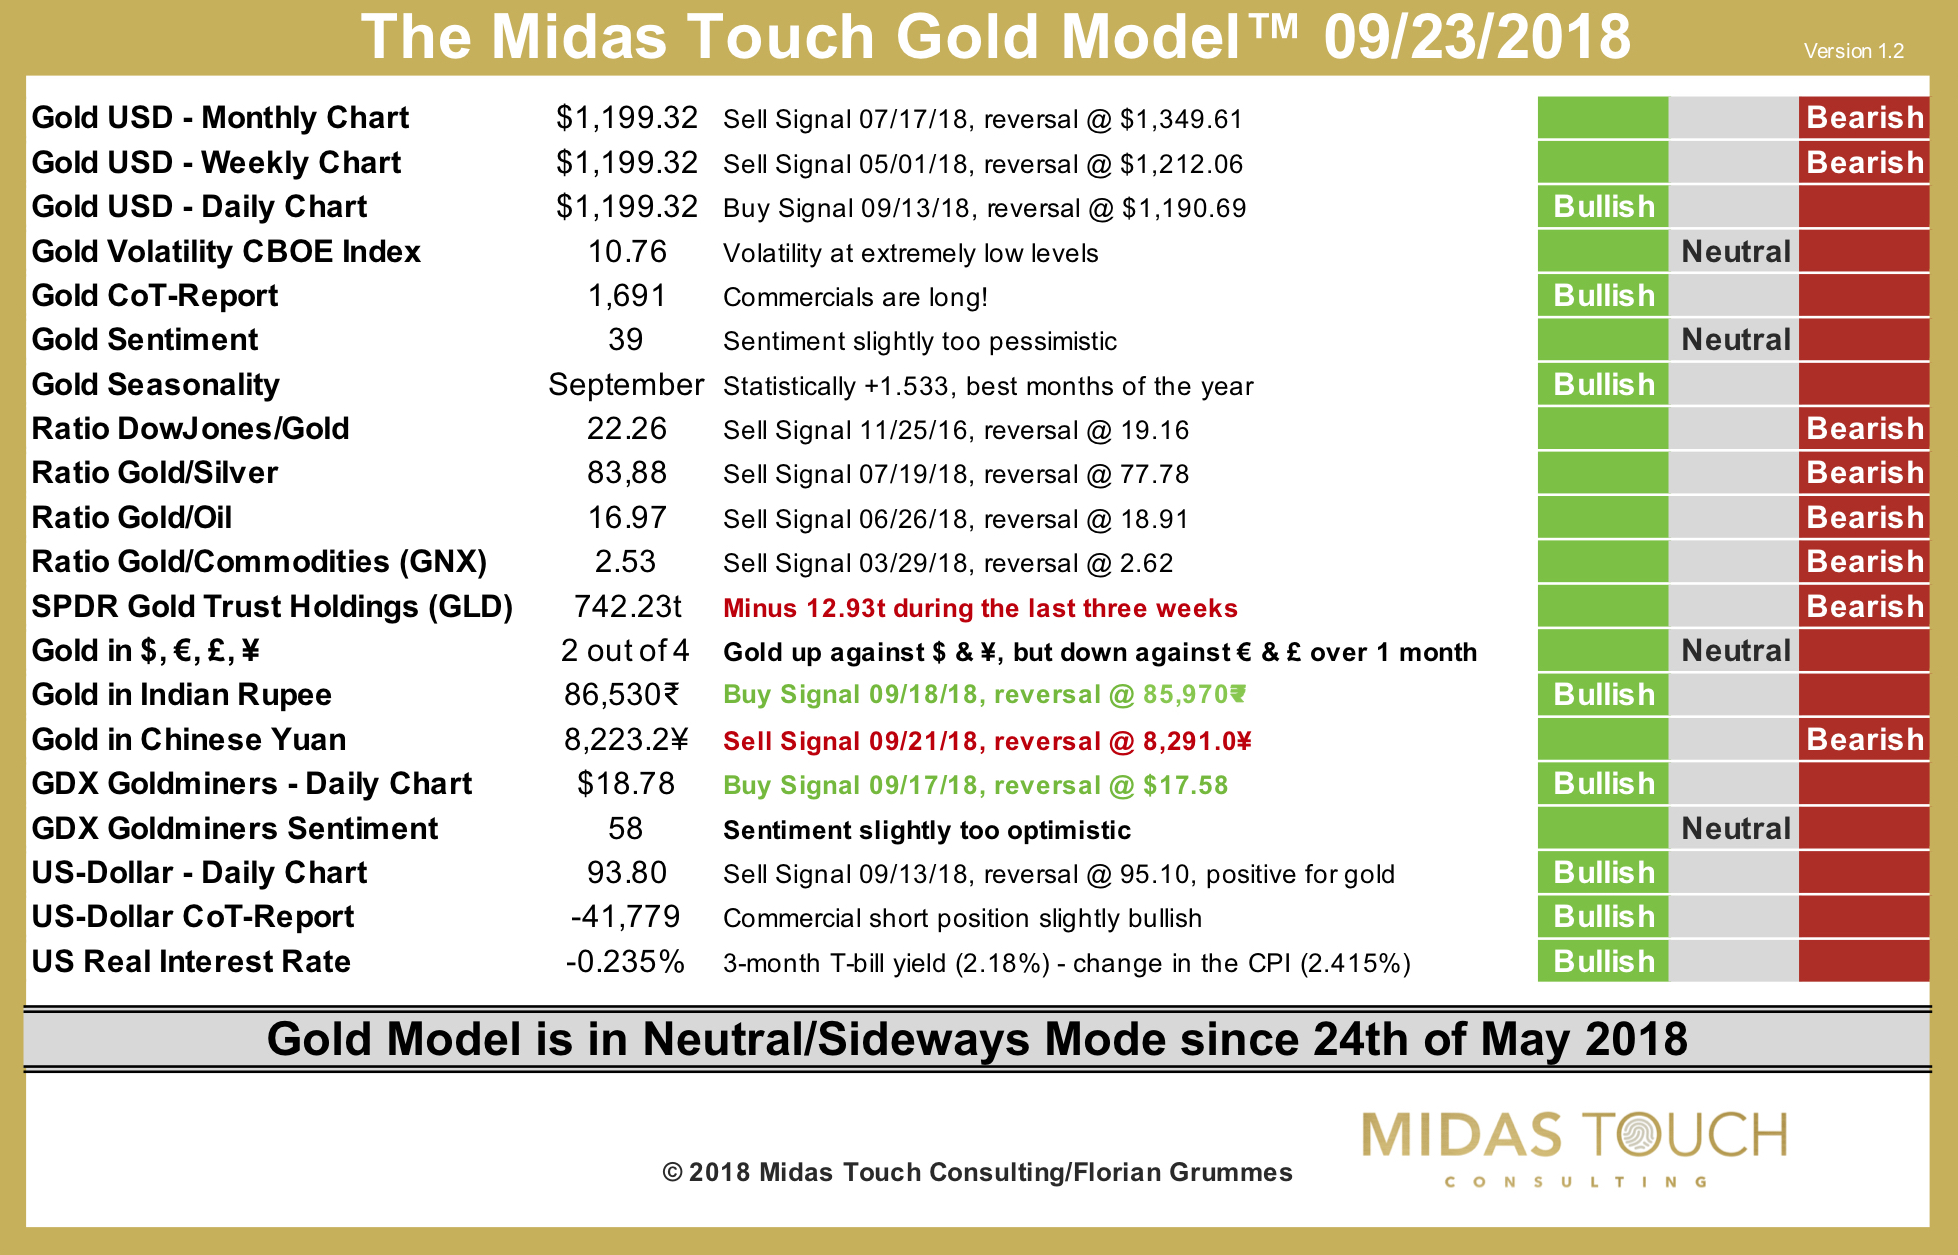 The Midas Touch Gold Model™ as of September 23rd, 2018